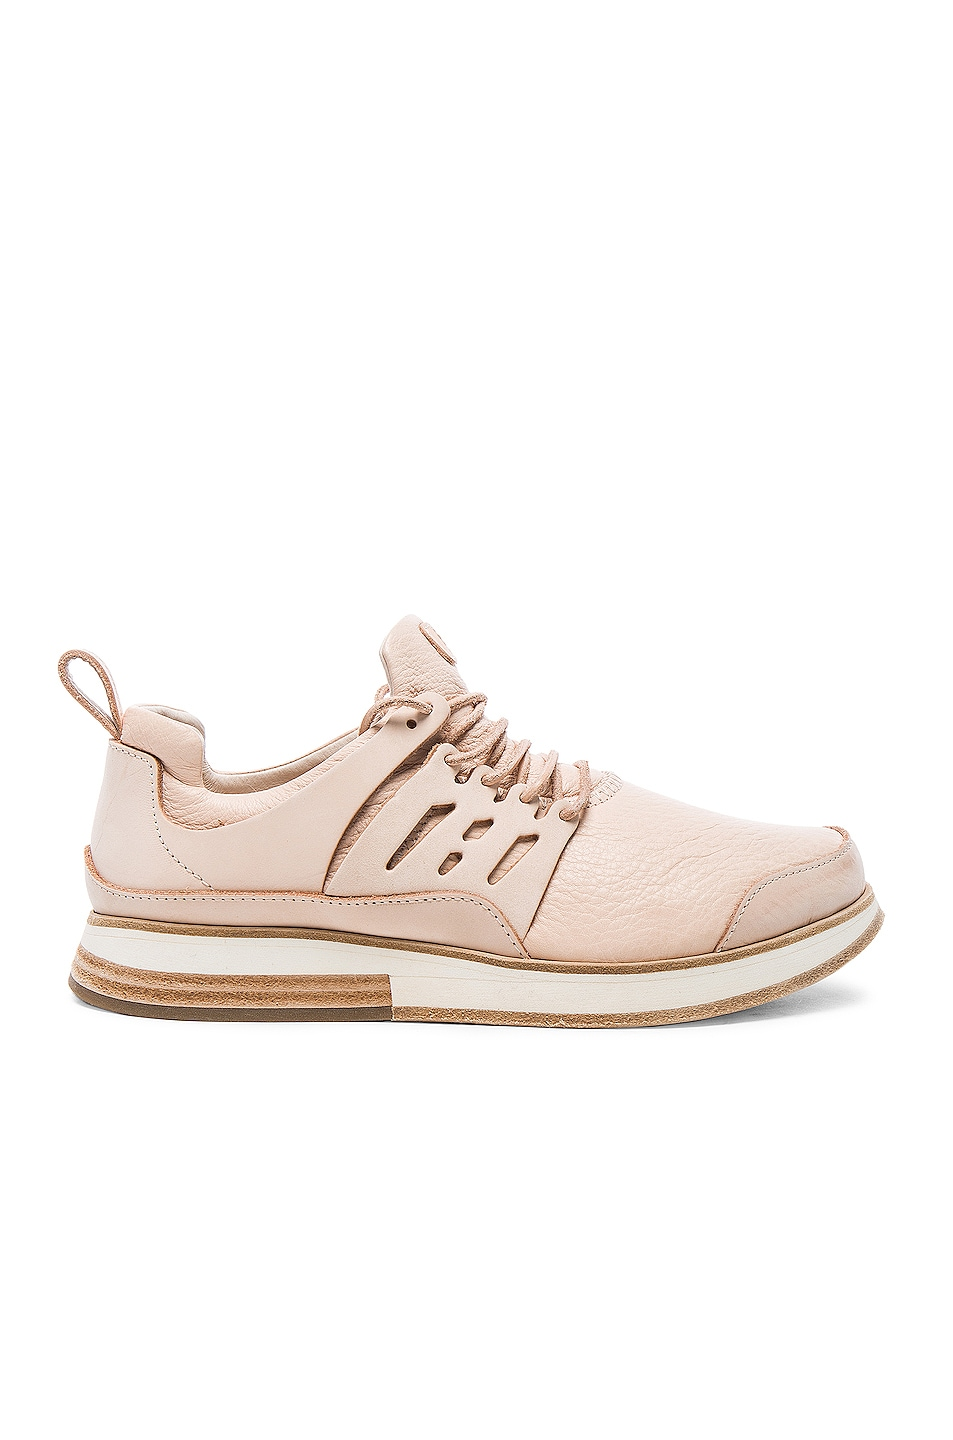 Image 1 of Hender Scheme Manual Industrial Product 12 in Natural